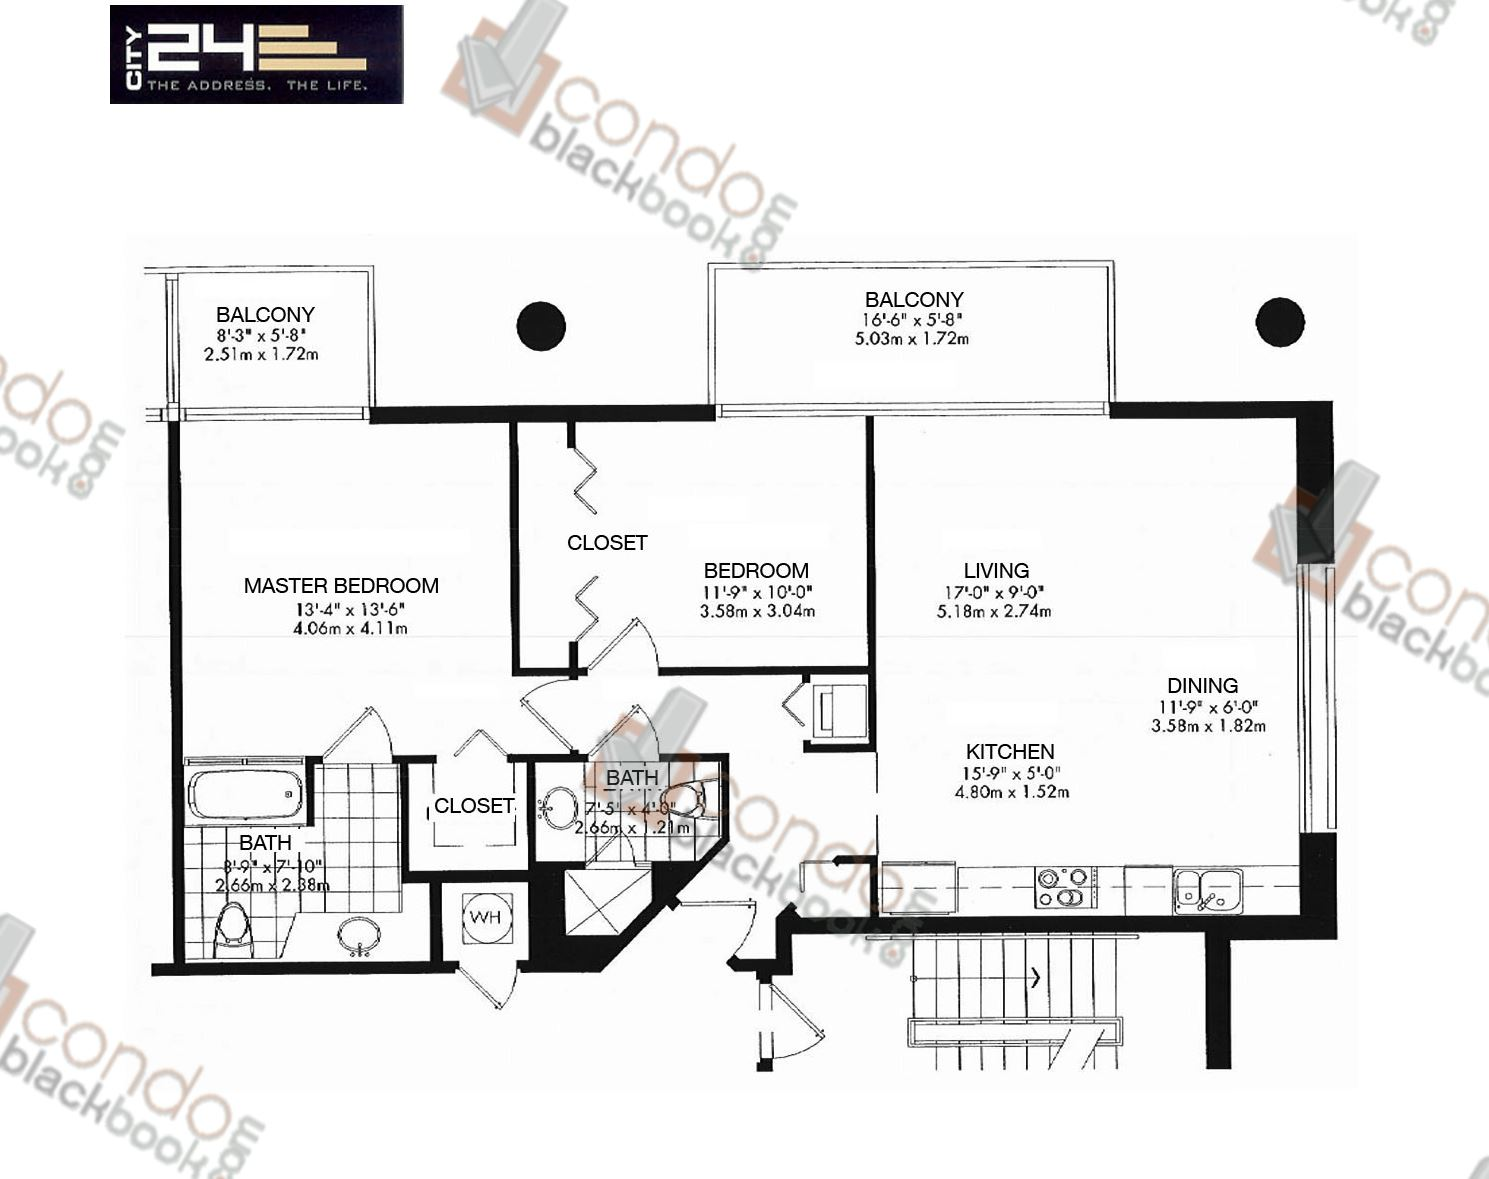 Floor plan for City 24 Edgewater Miami, model Unit B3, line 01,06,07, 2/2 bedrooms, 1,033 sq ft